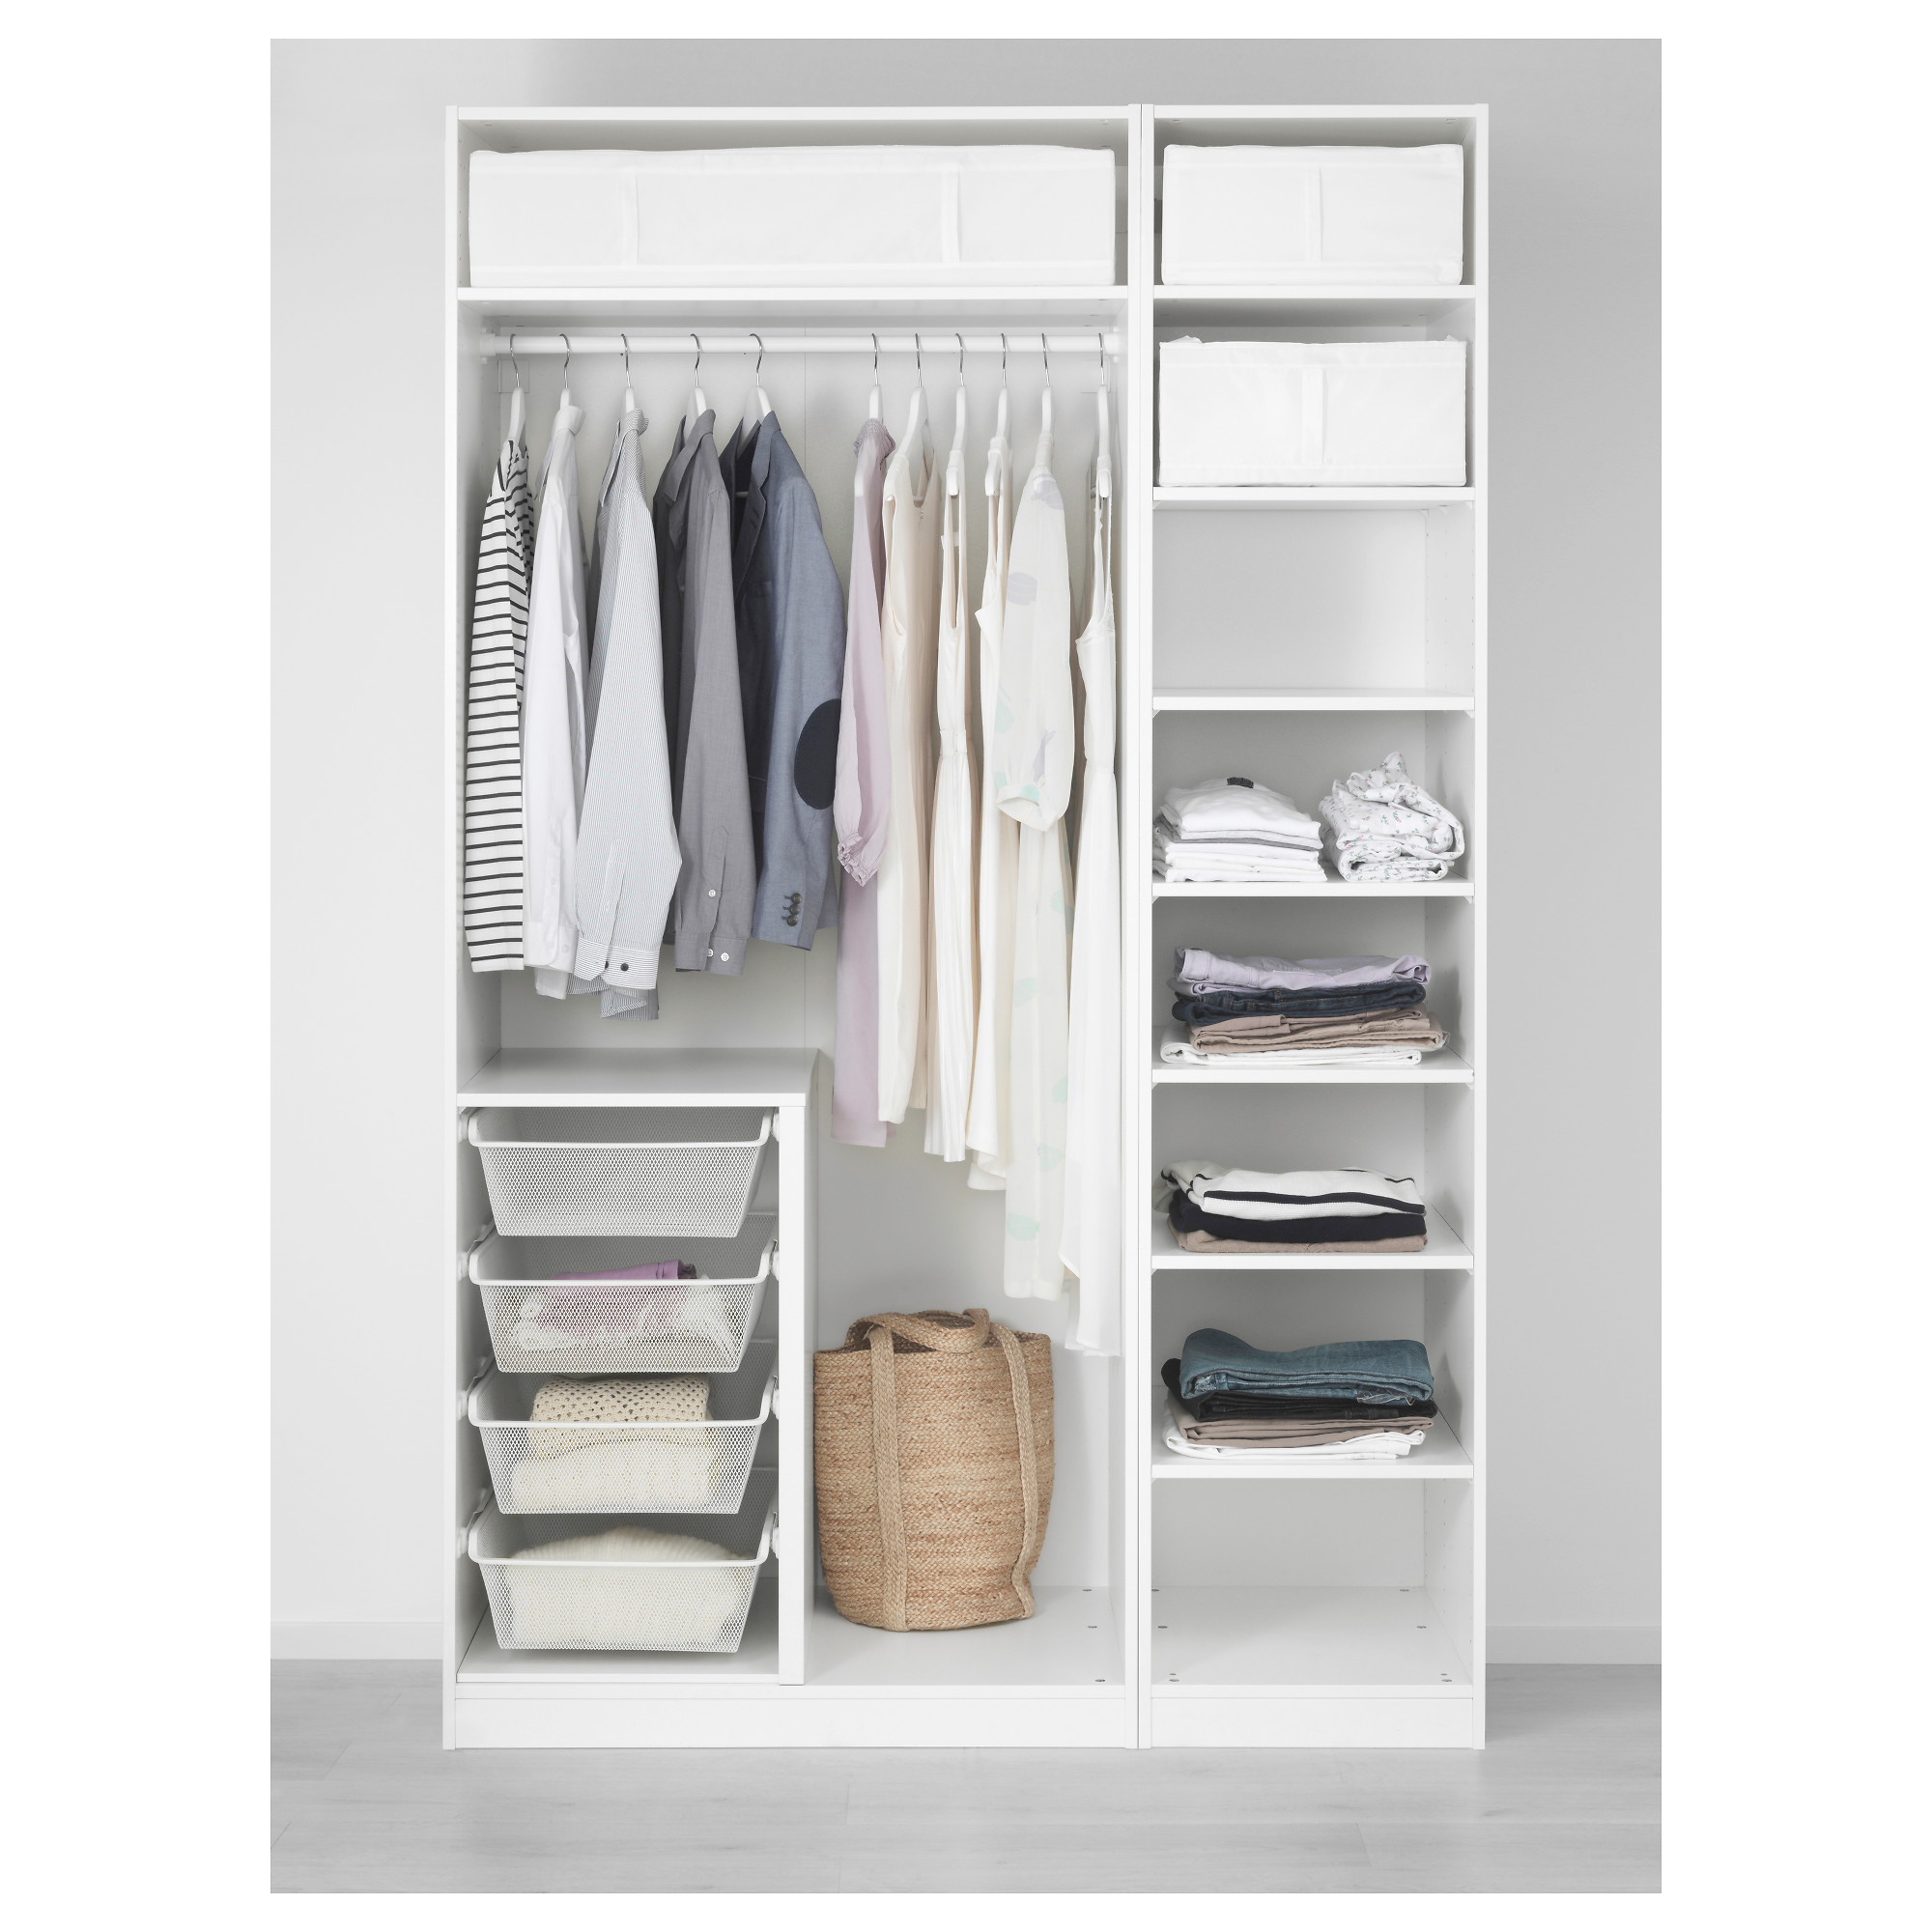 Wardrobes Without Doors PAX System IKEA - Ikea wardrobe